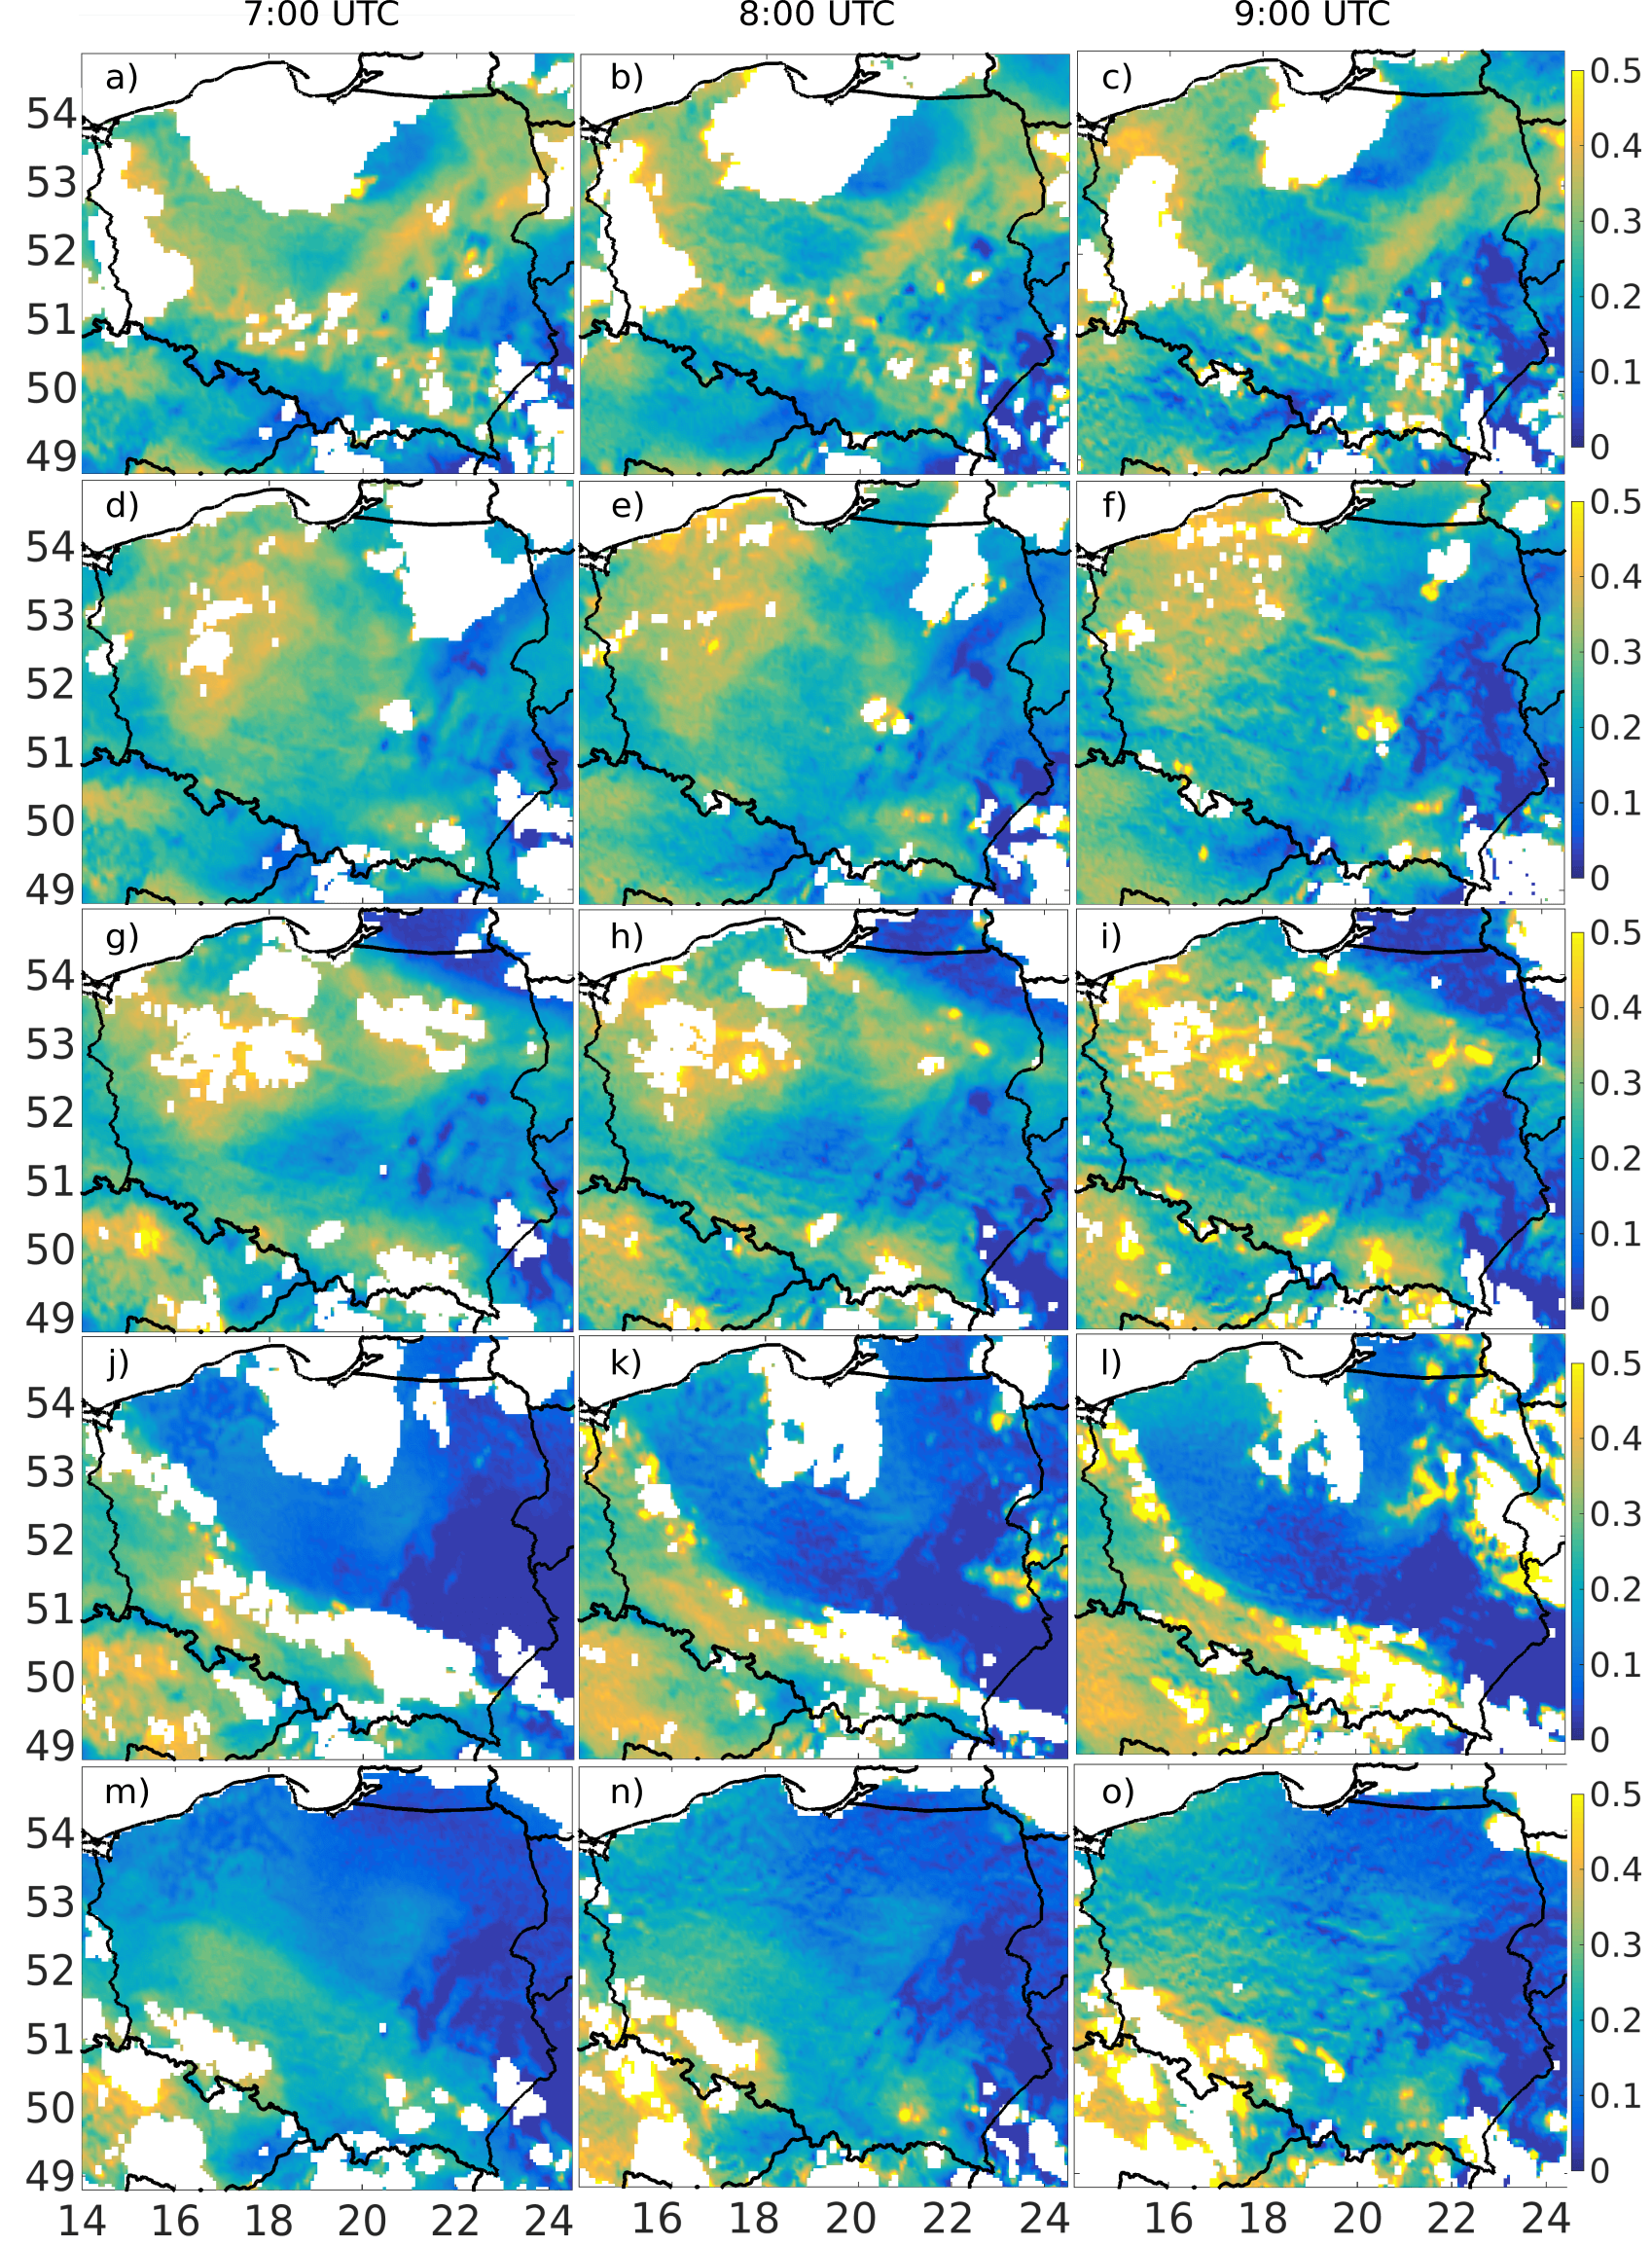 Aerosol optical depth obtained over Poland from SEVIRI sensor at 635 nm calculated for 15 min at 7:00, 8:00 and 9:00 UTC (in columns) on 11-14 and 16 September 2016 (in rows); white pixels are due to clouds.